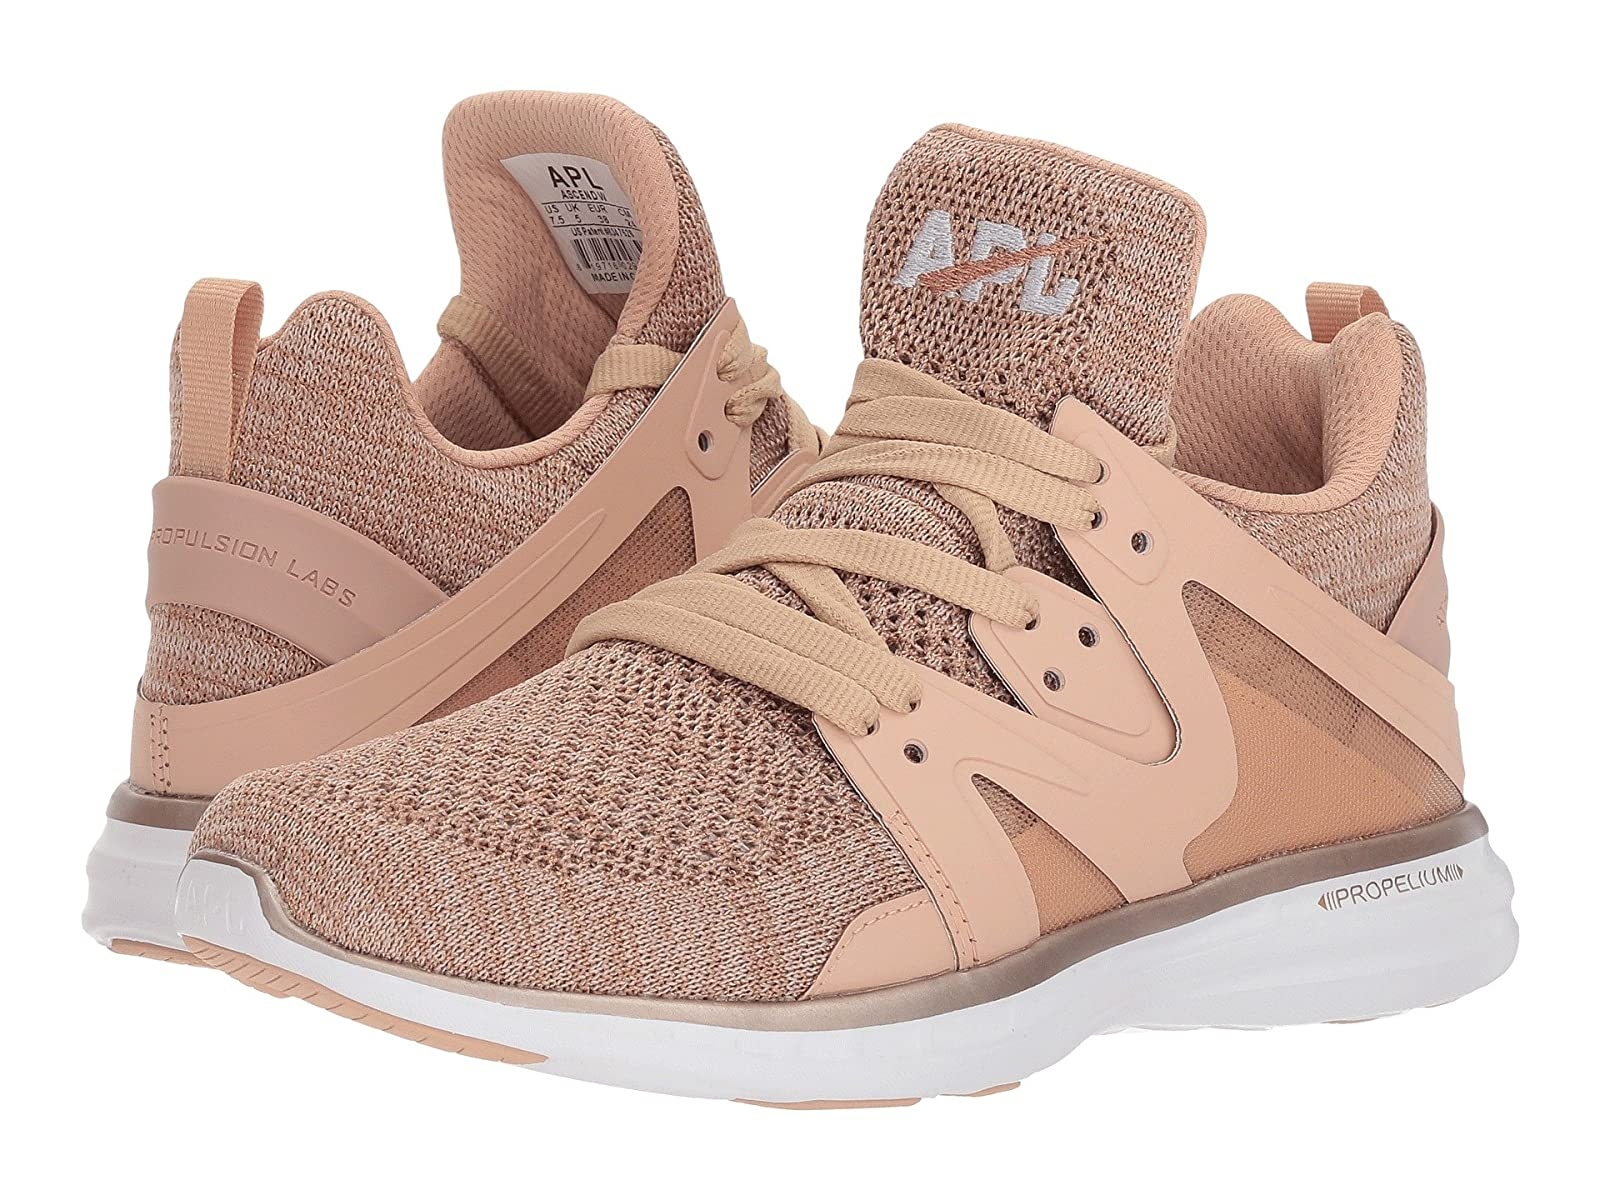 Athletic Propulsion Labs (APL) AscendCheap and distinctive eye-catching shoes